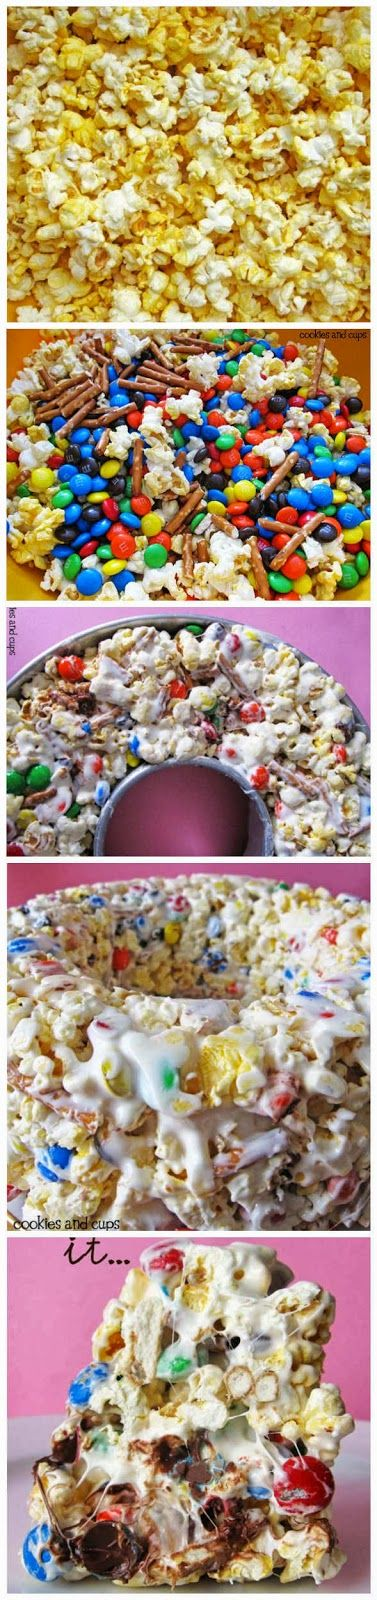 Popcorn Cake...Going to have to make this just becuz it looks way neat! :)